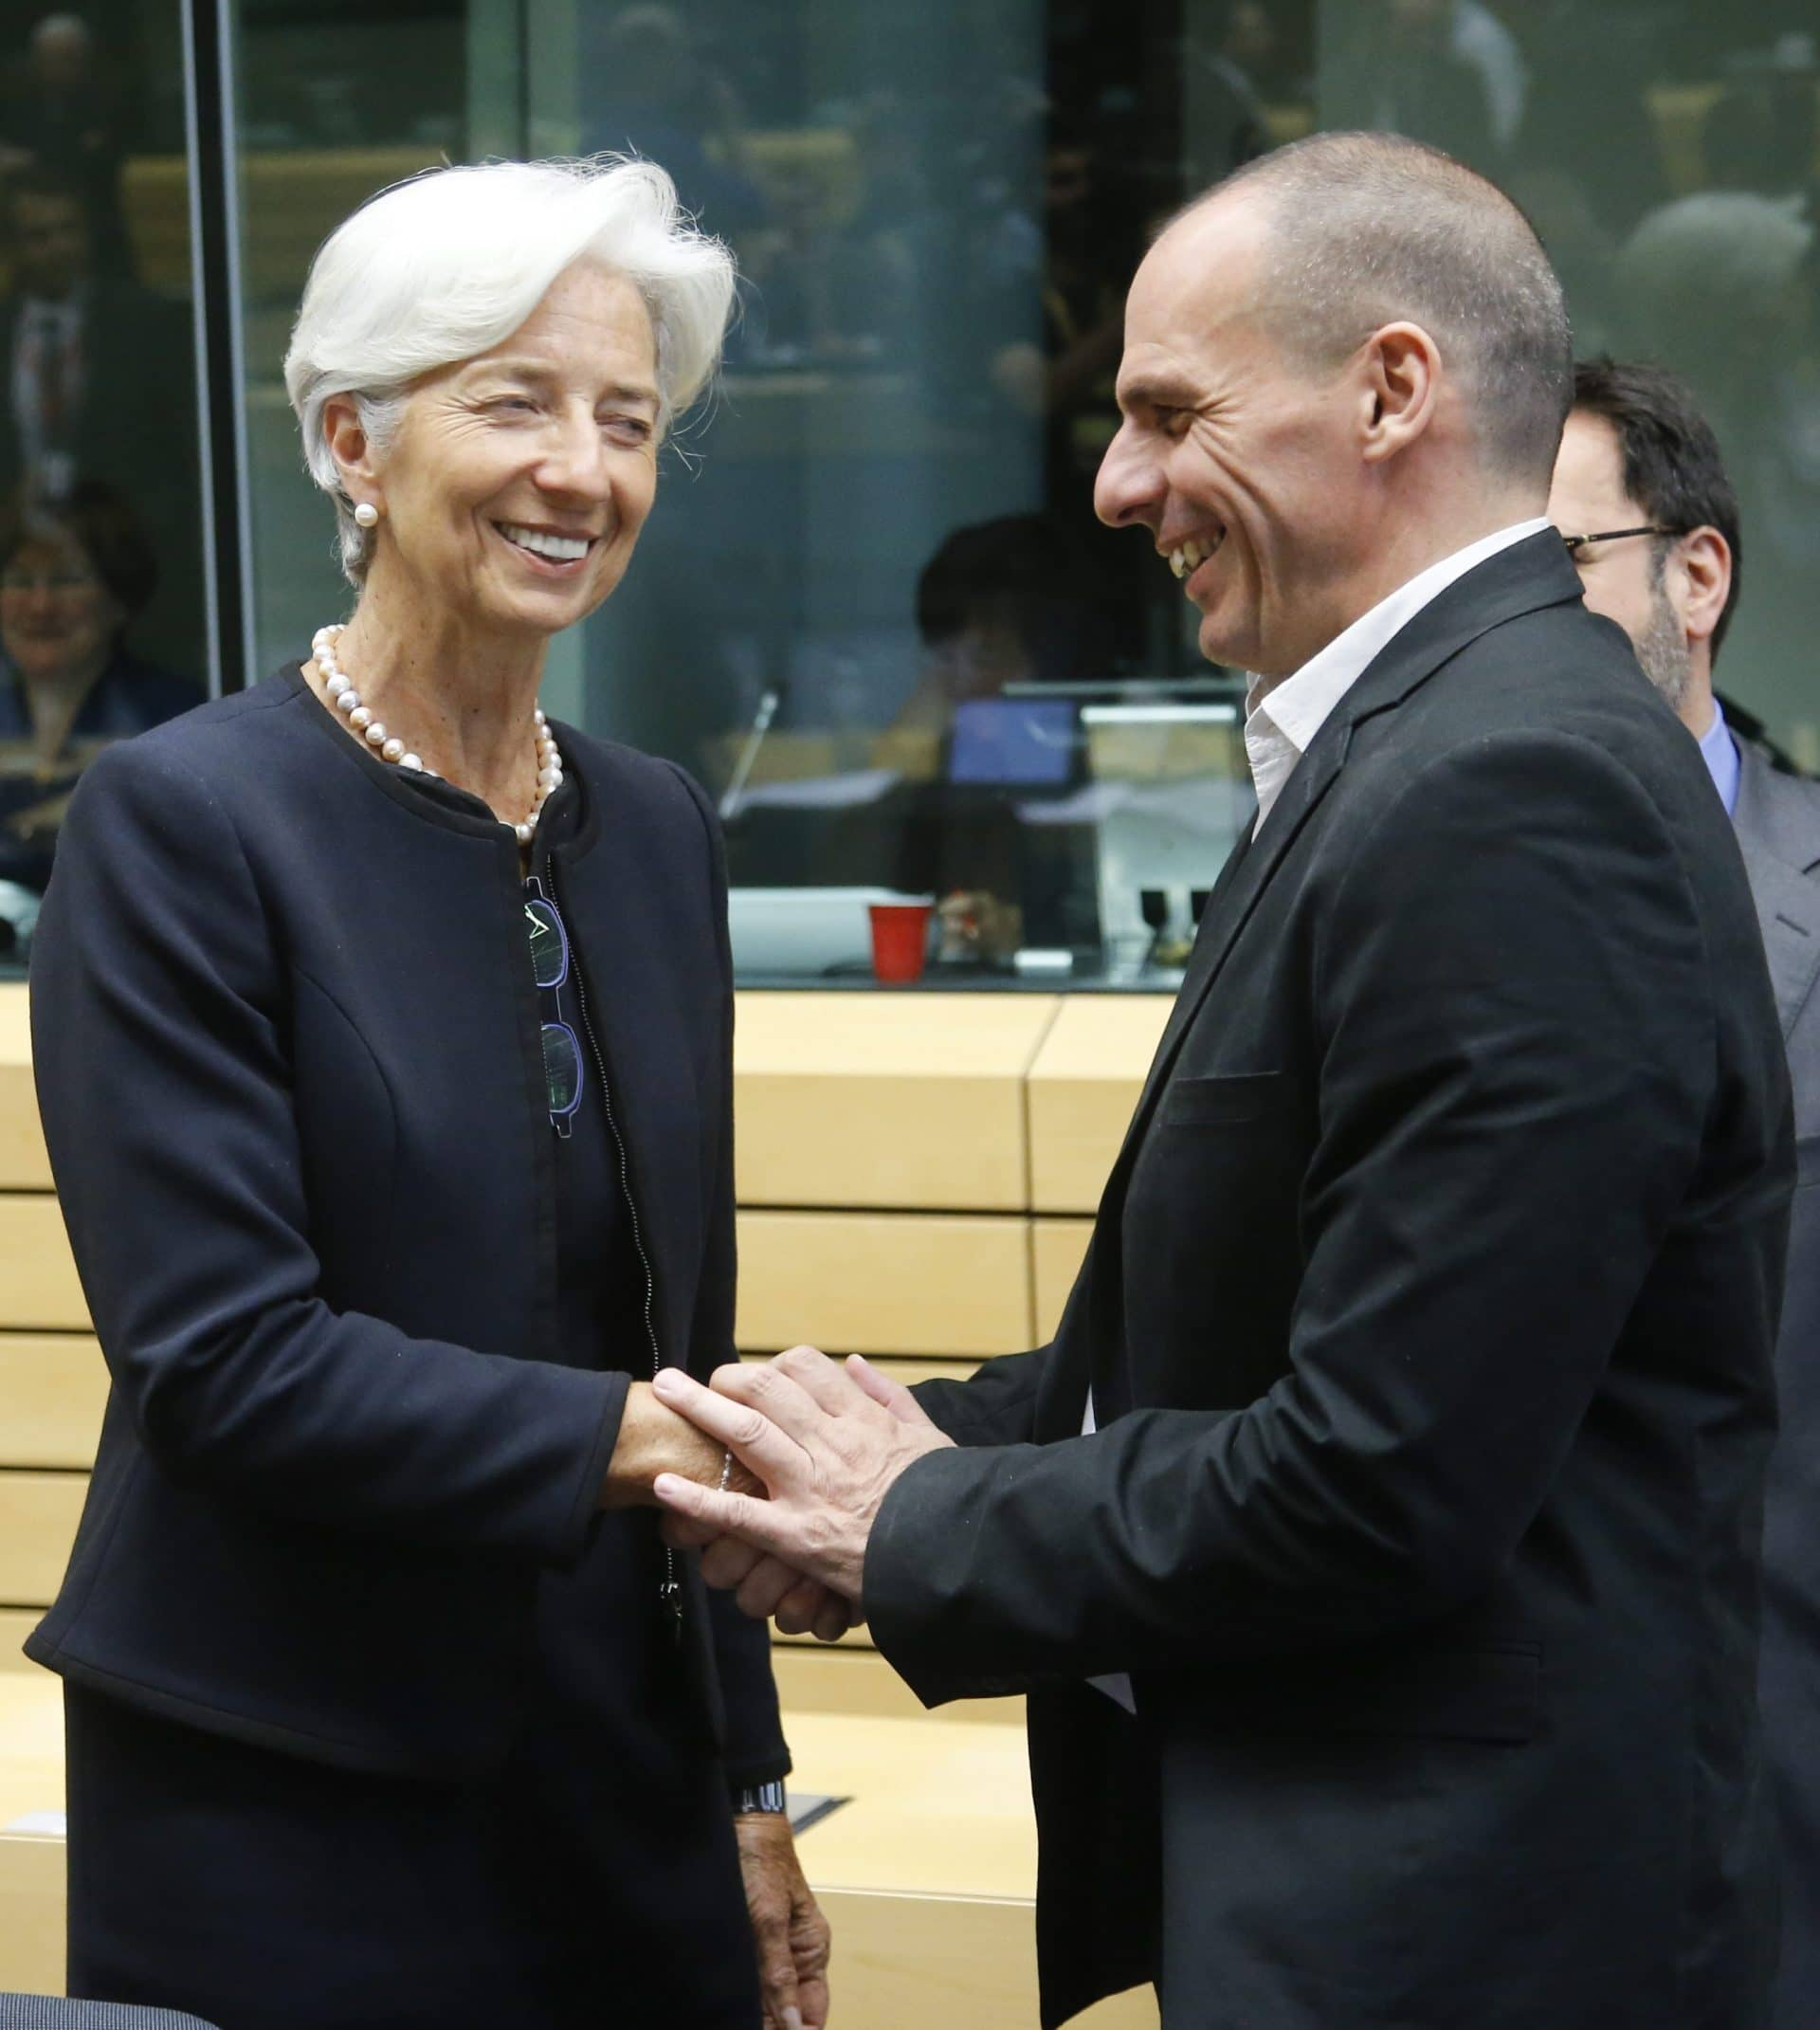 International Monetary Fund (IMF) managing director Christine Lagarde and Greek Finance Minister Yanis Varoufakis (R) at the start of a special Eurogroup Finance ministers meeting on Greek crisis at EU council headquarters in Brussels, Belgium, 25 June 2015. Eurozone finance ministers will reconvene on to assess the situation, before the European Union's 28 leaders kick off their two-day summit in Brussels later the day. A special meeting of the 19 eurozone leaders could also be held. Greece and its creditors continued marathon talks on how to avoid a bankruptcy in the country, just hours before an EU summit meant to bookend the crisis., Image: 250922014, License: Rights-managed, Restrictions: , Model Release: no, Credit line: Profimedia, TEMP EPA